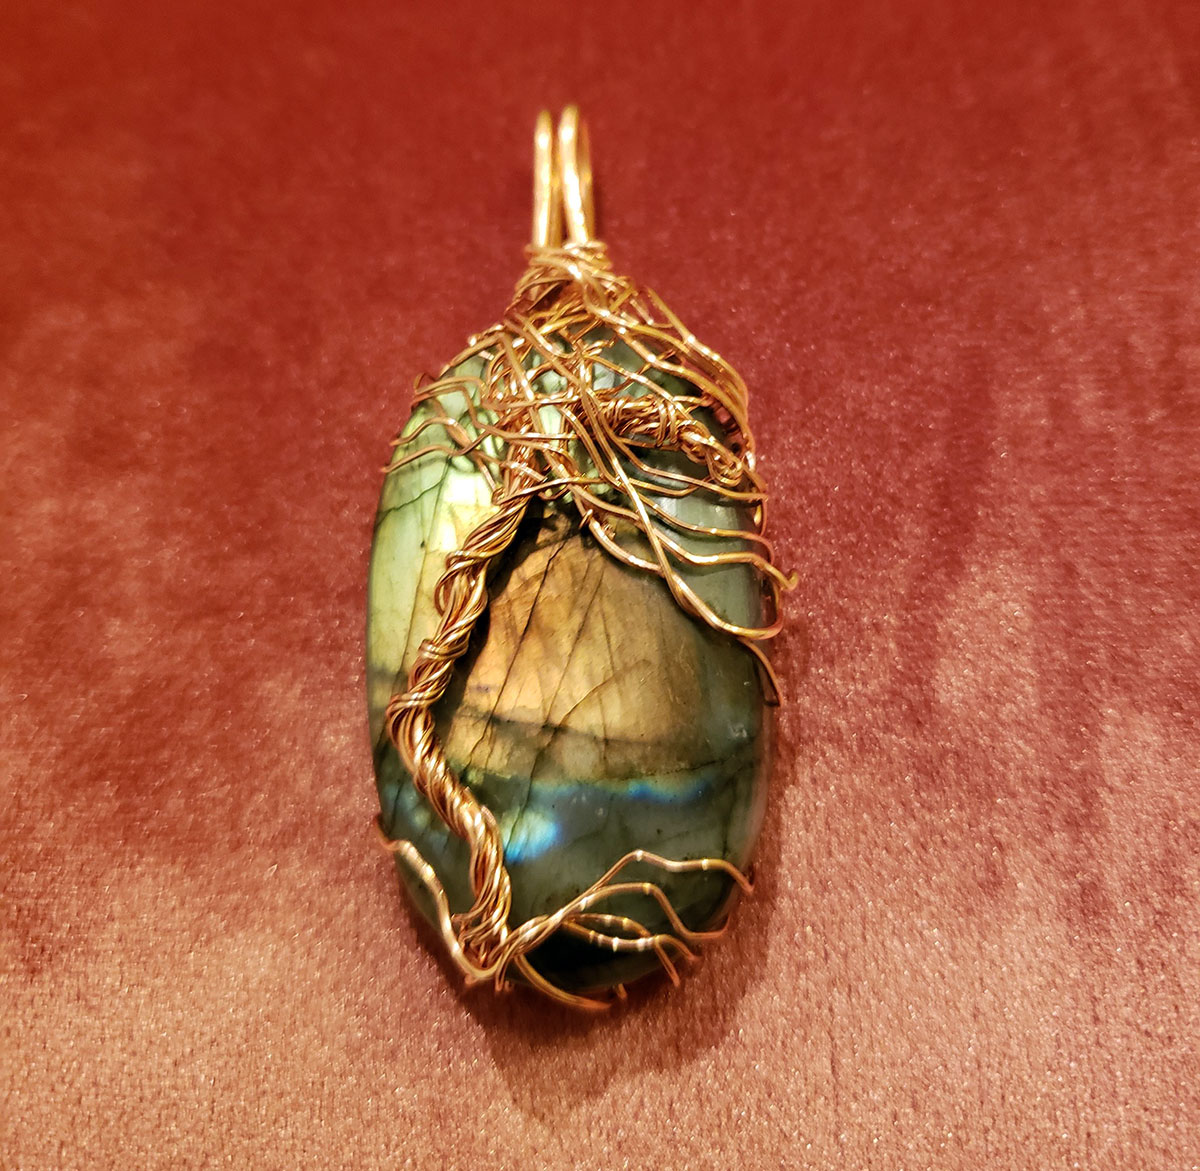 Jewelers Bronze Wrapped Laborite Stone by Tina Acciavatti